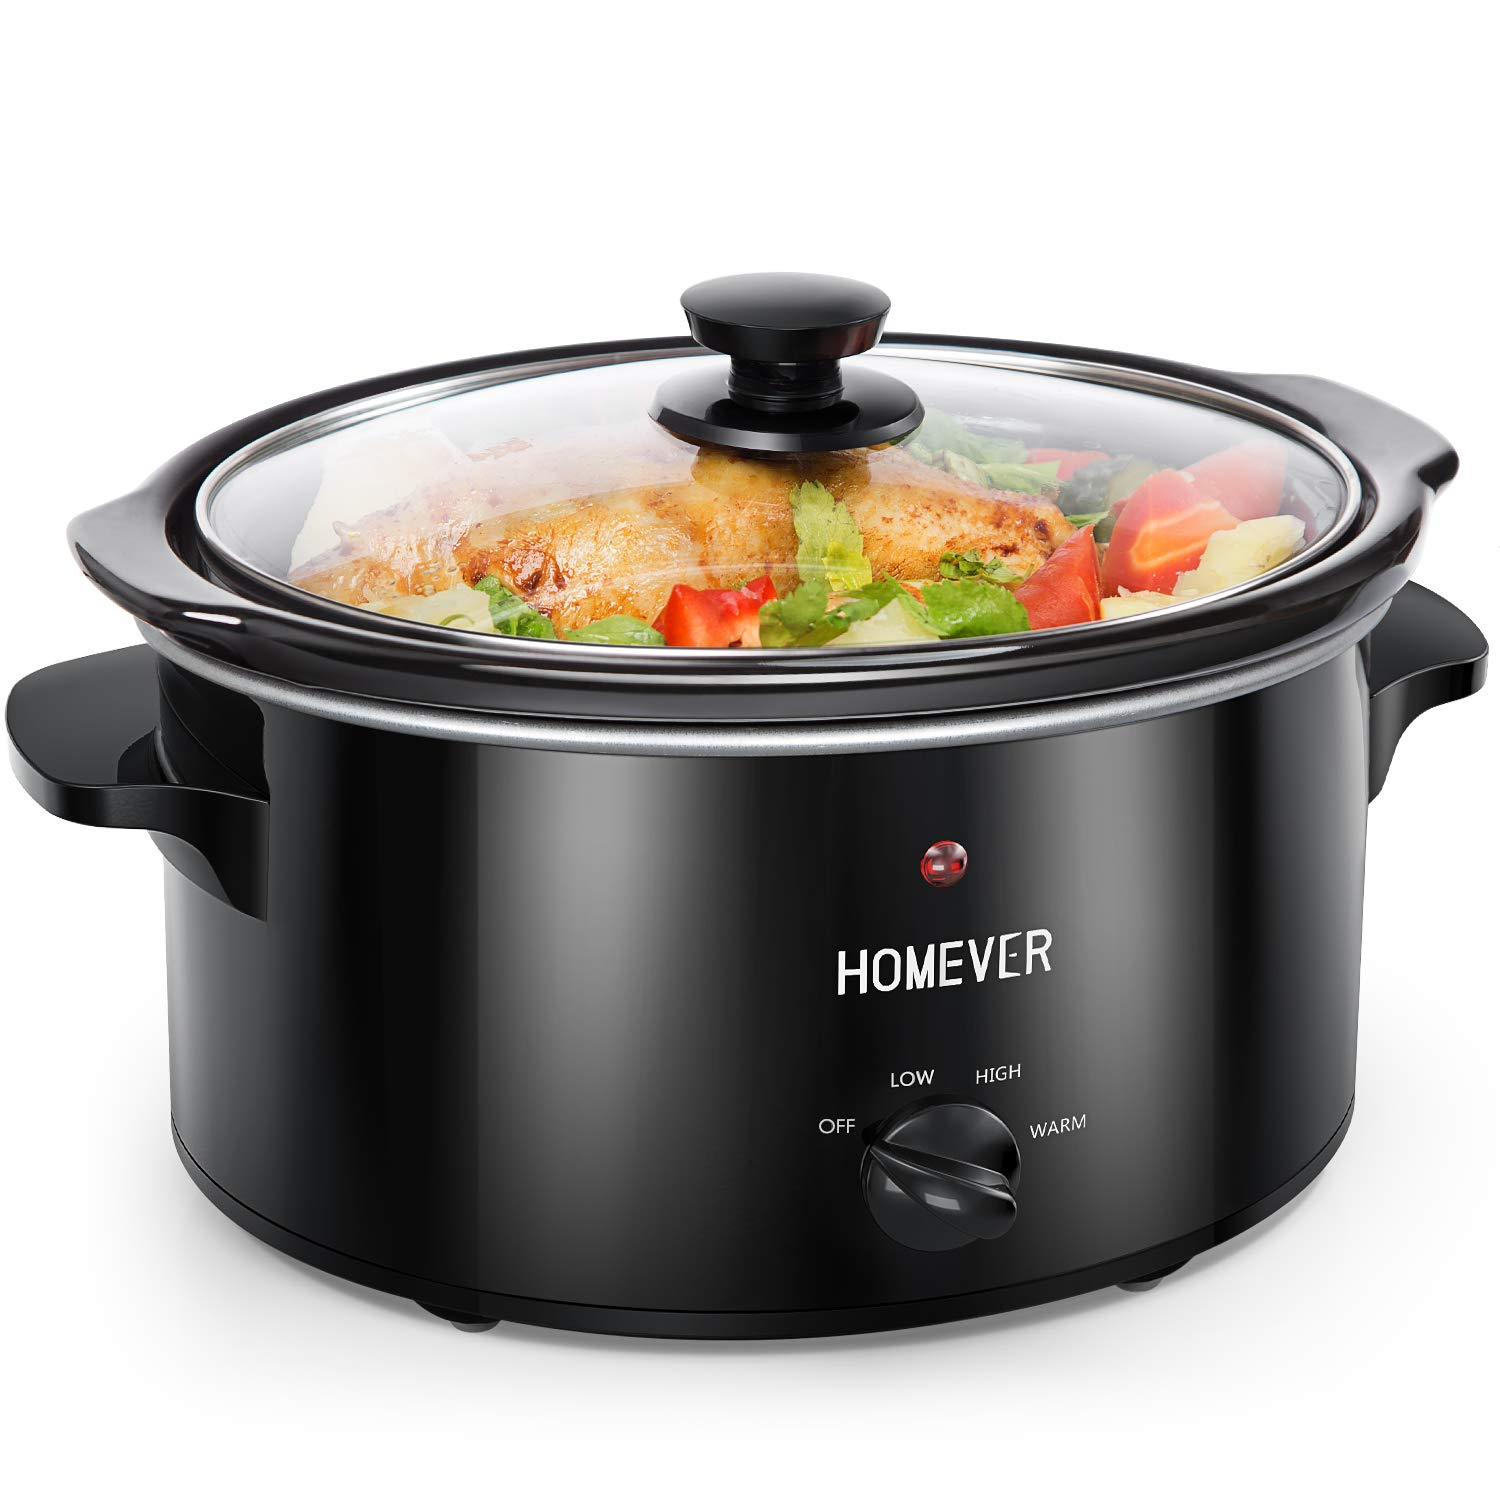 Homever Slow Cooker,3.5-Quart Manual Slow Pot with Standard Lid,Multi-Cooker with Removable Ceramic Cooking Crock,3 Adjustable Temp Settings (High/Low/Warm), Cooking for Vegetables,Beef,Cake,etc.